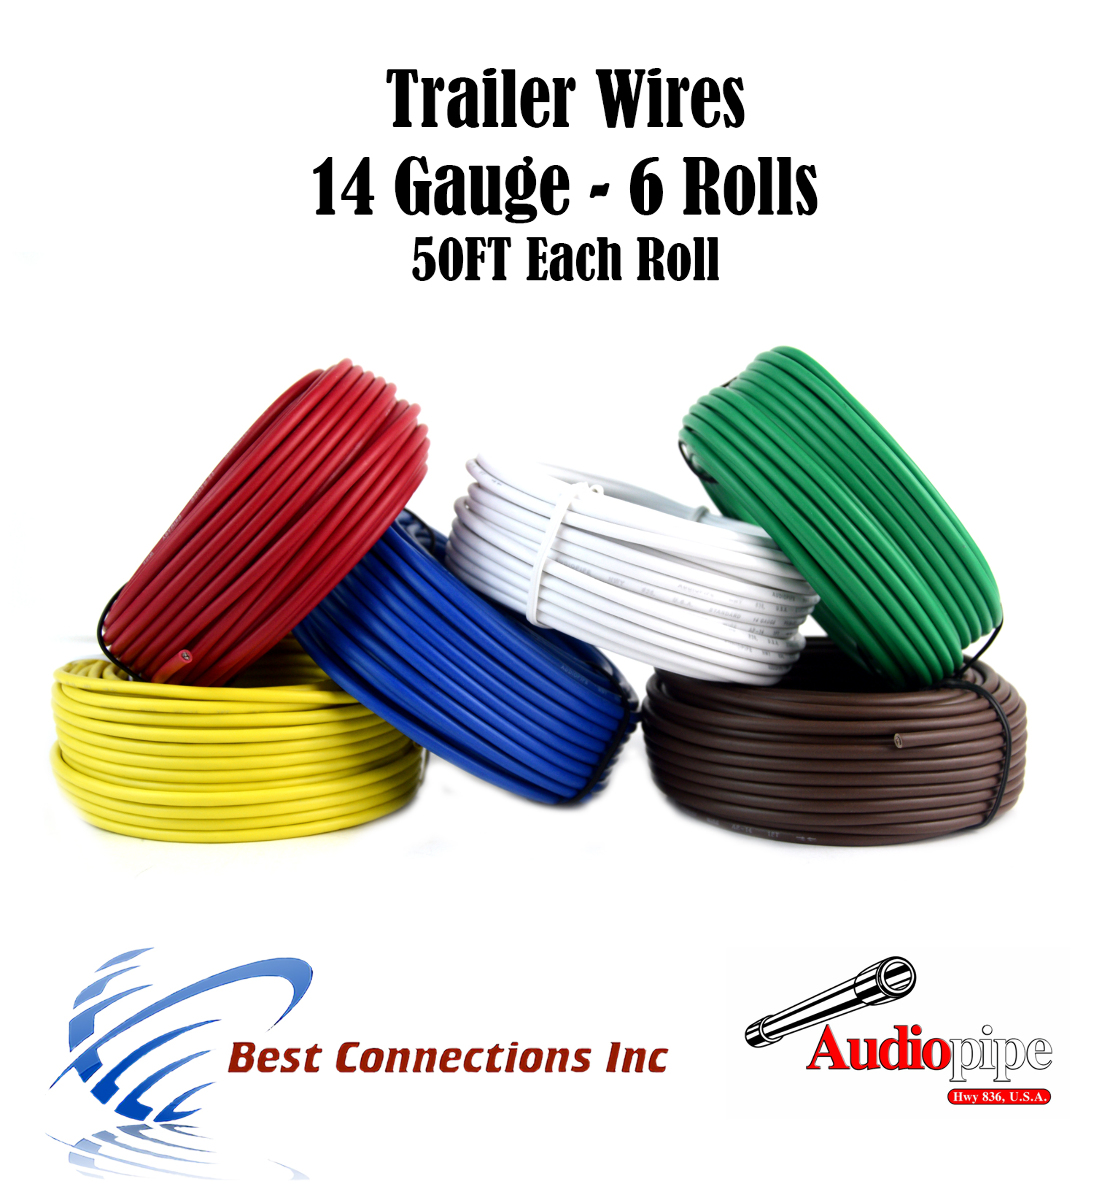 hight resolution of 6 way trailer wire light cable for harness led 50ft each roll 14 gauge 6 rolls walmart com